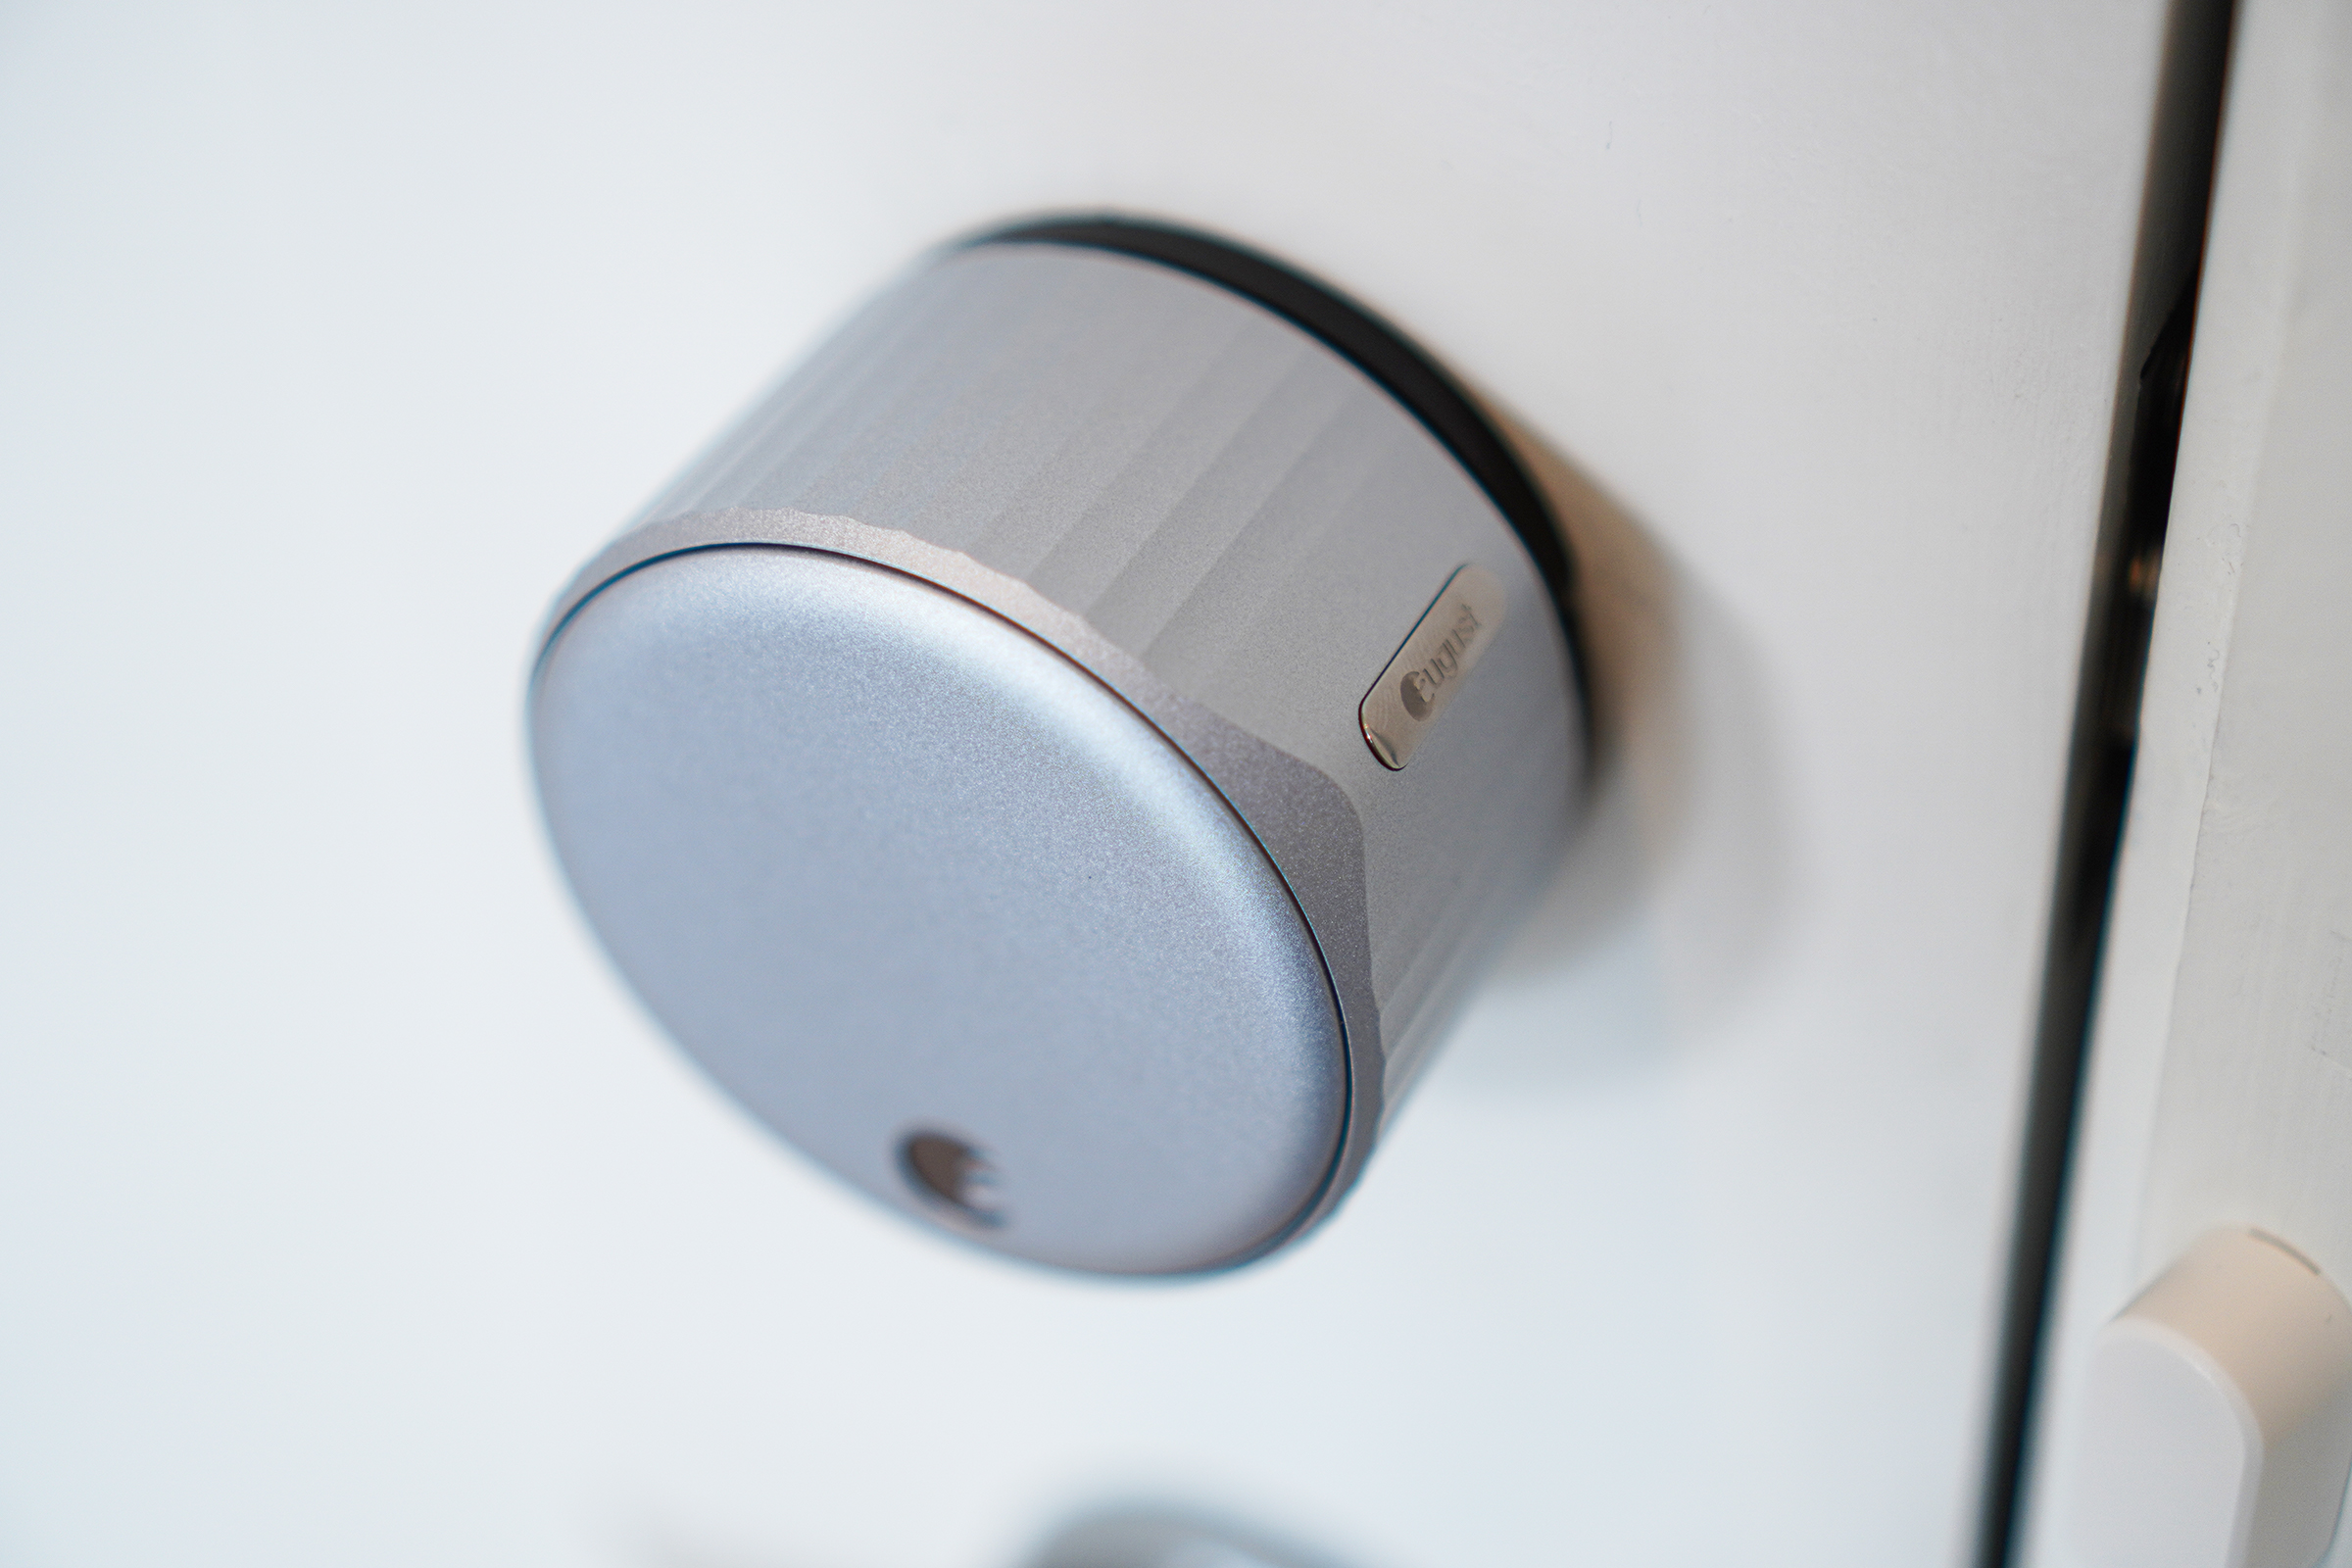 The new August Wi-Fi Smart Lock is now available, and it's the connected smart lock to beat 2